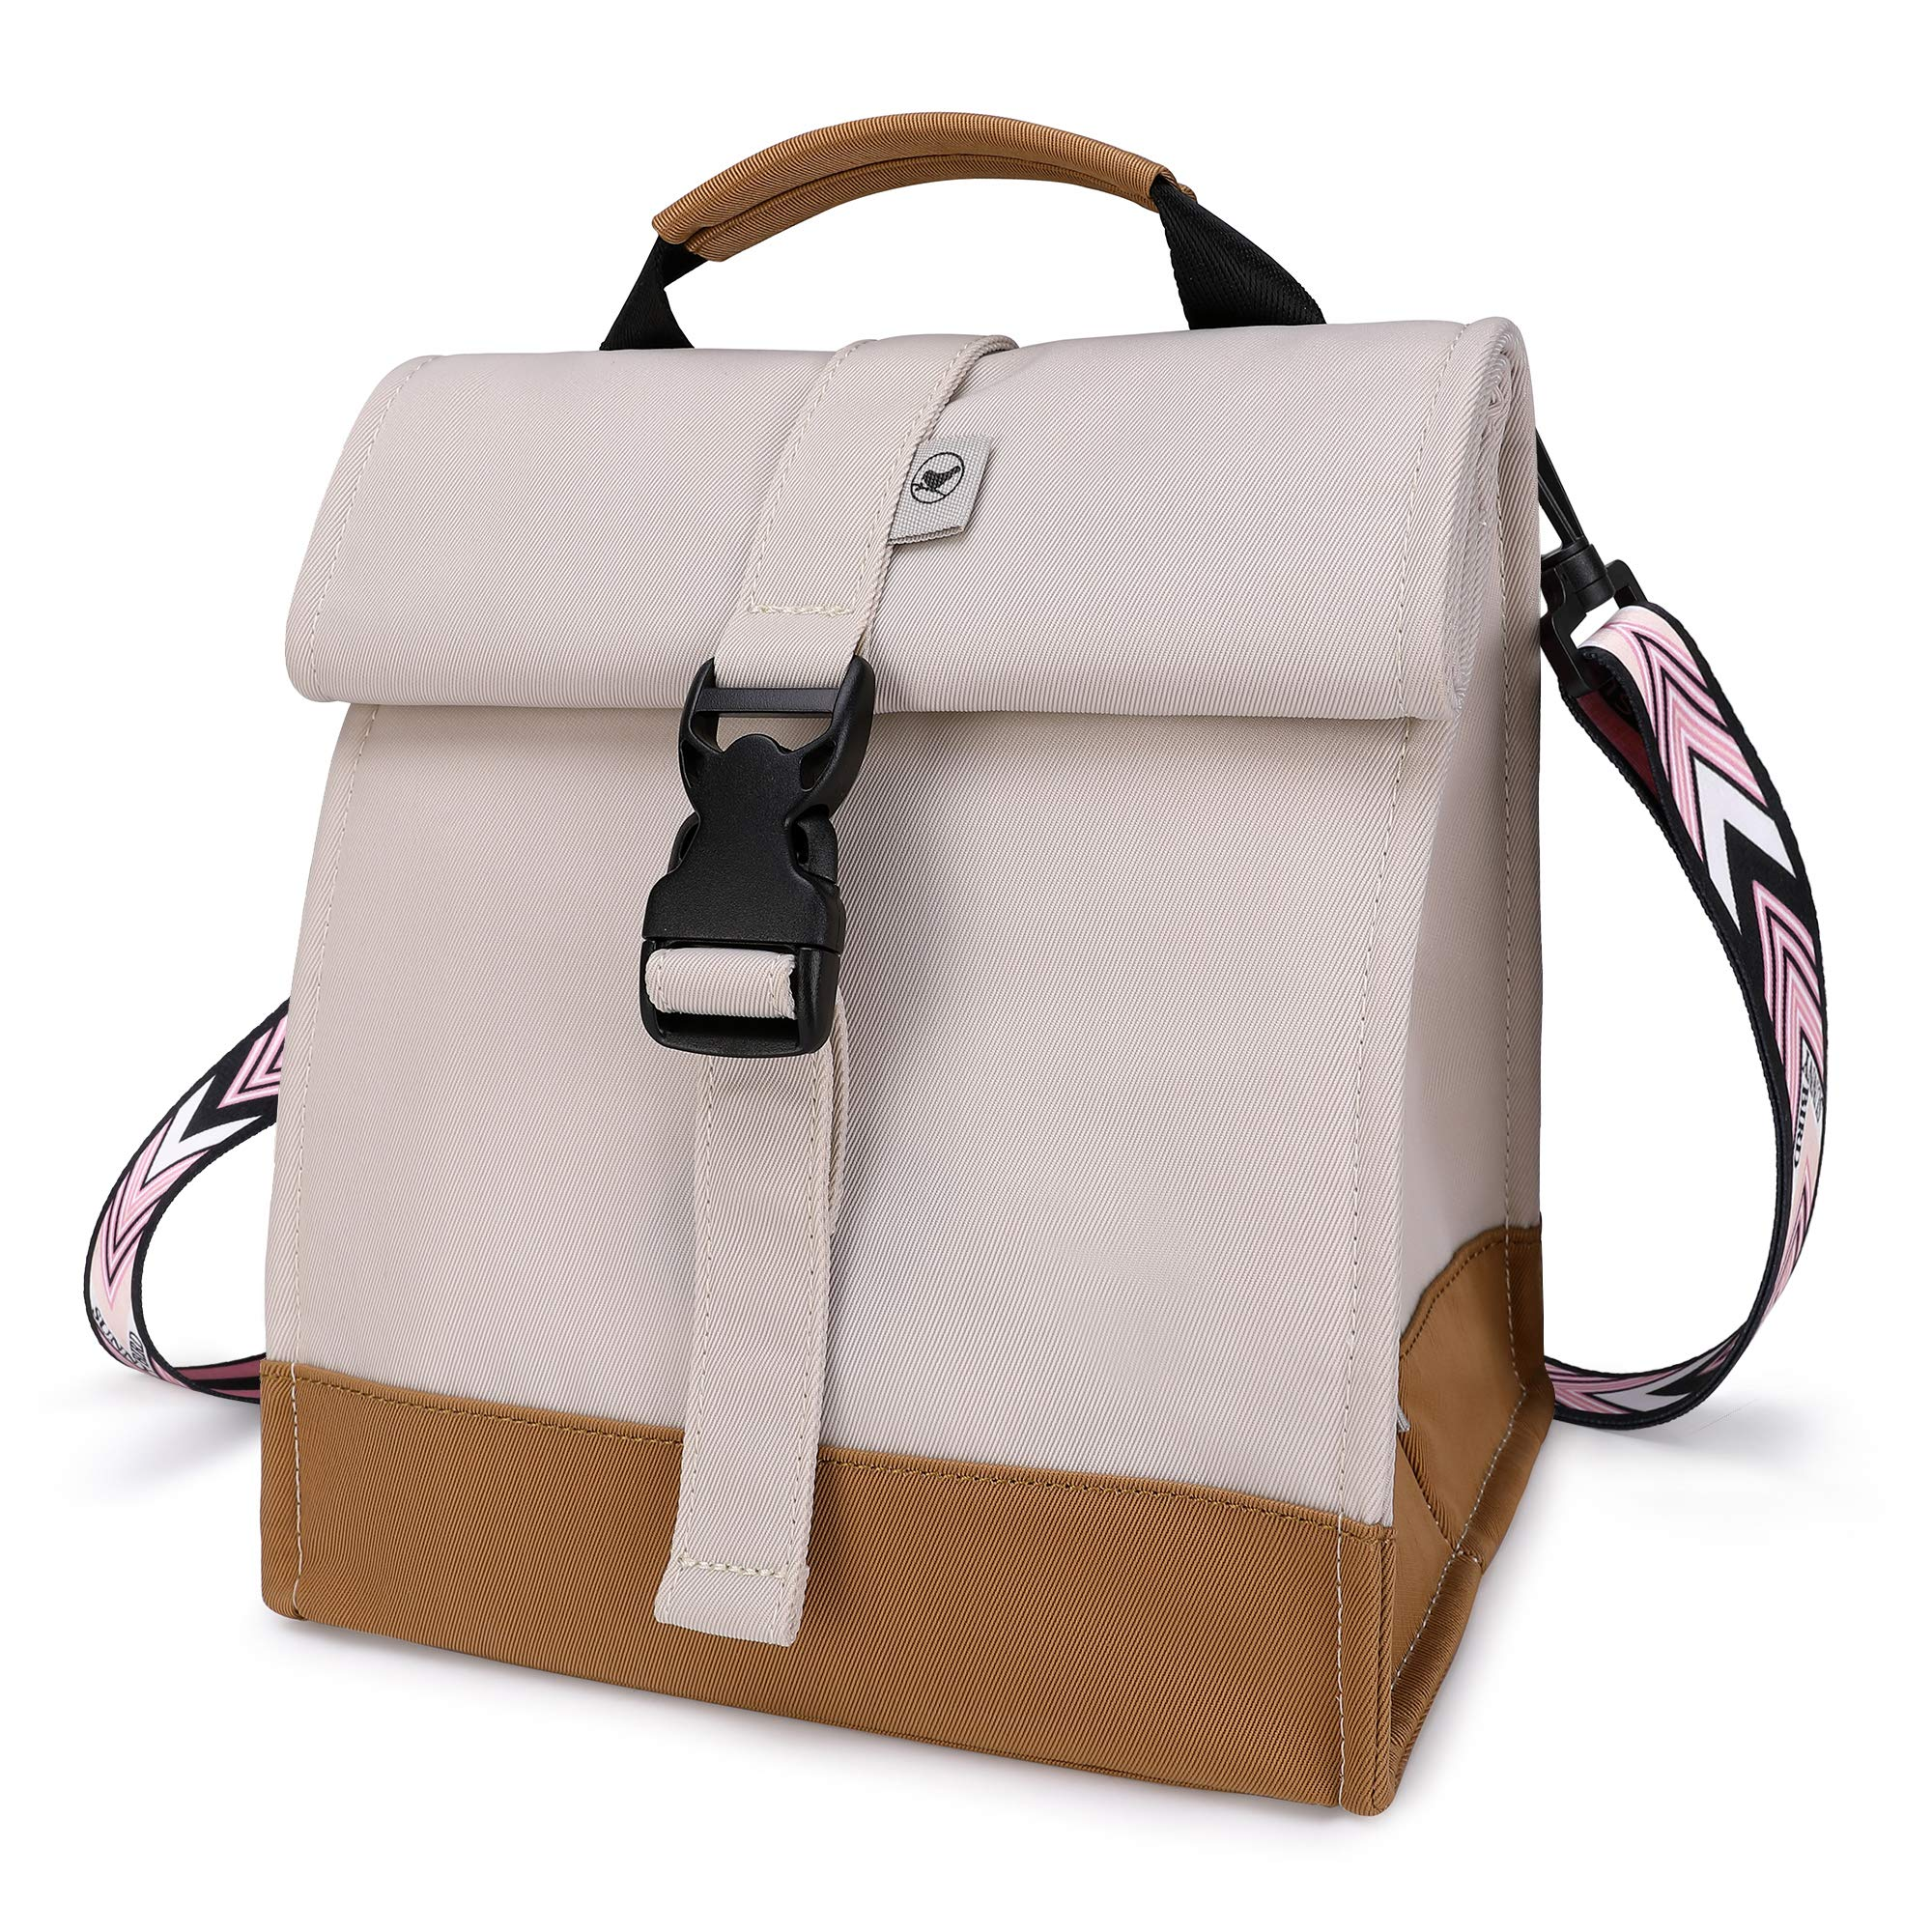 Sunny Bird Insulated Lunch Bag Rolltop Lunch Box for Women, Girls, Teens and Kids (White with pink shoulder strap)